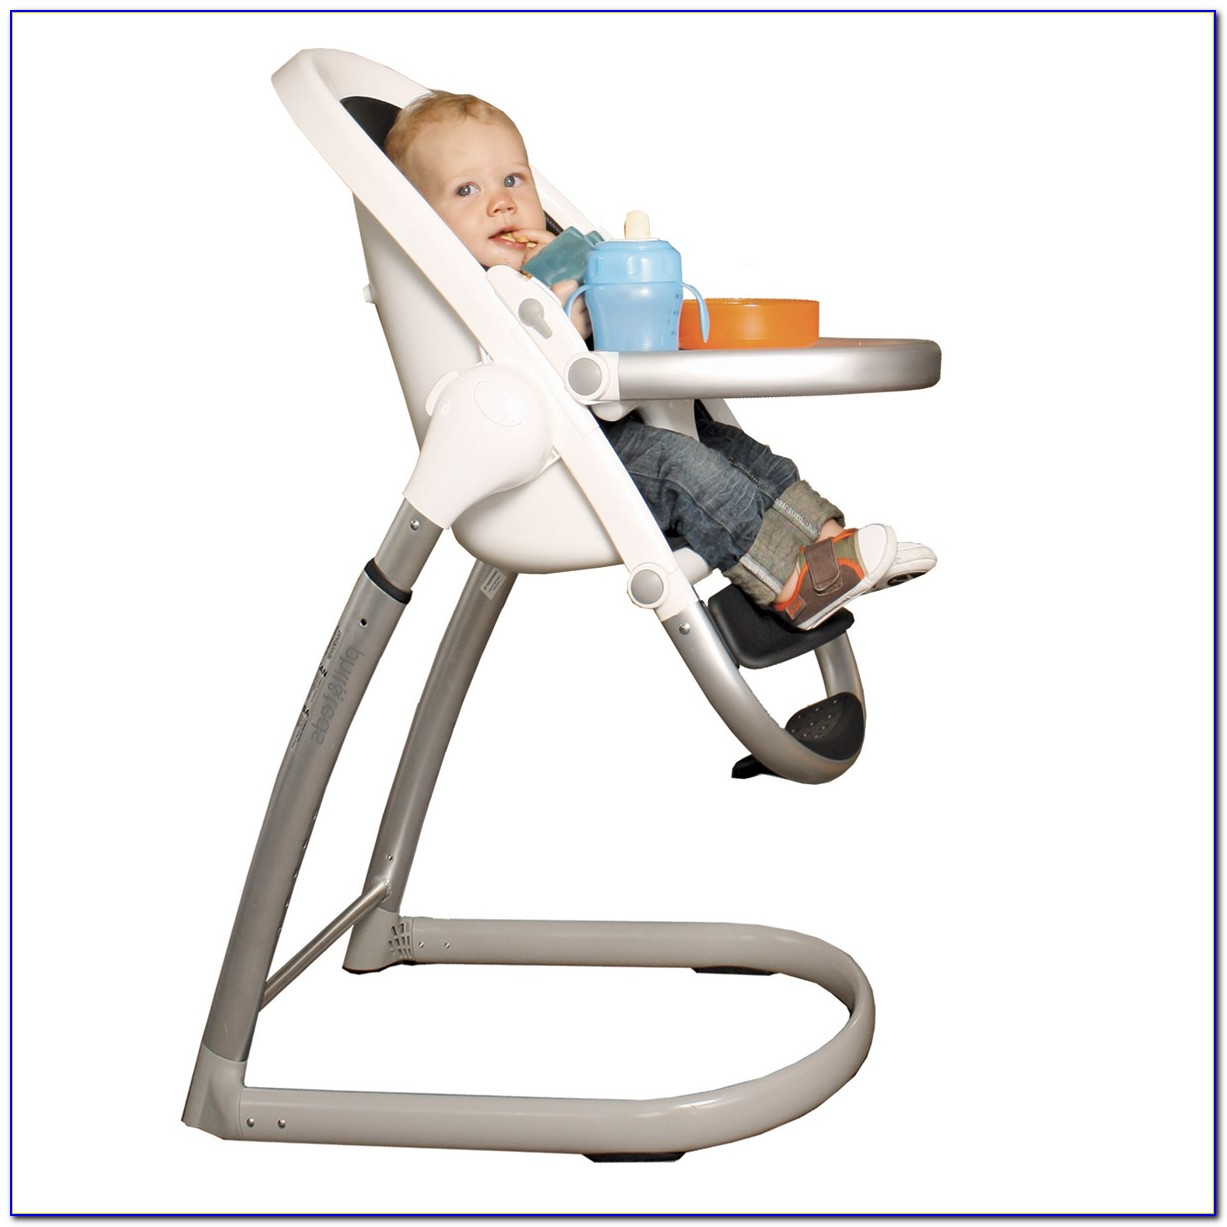 High Chair For Babies Amazon